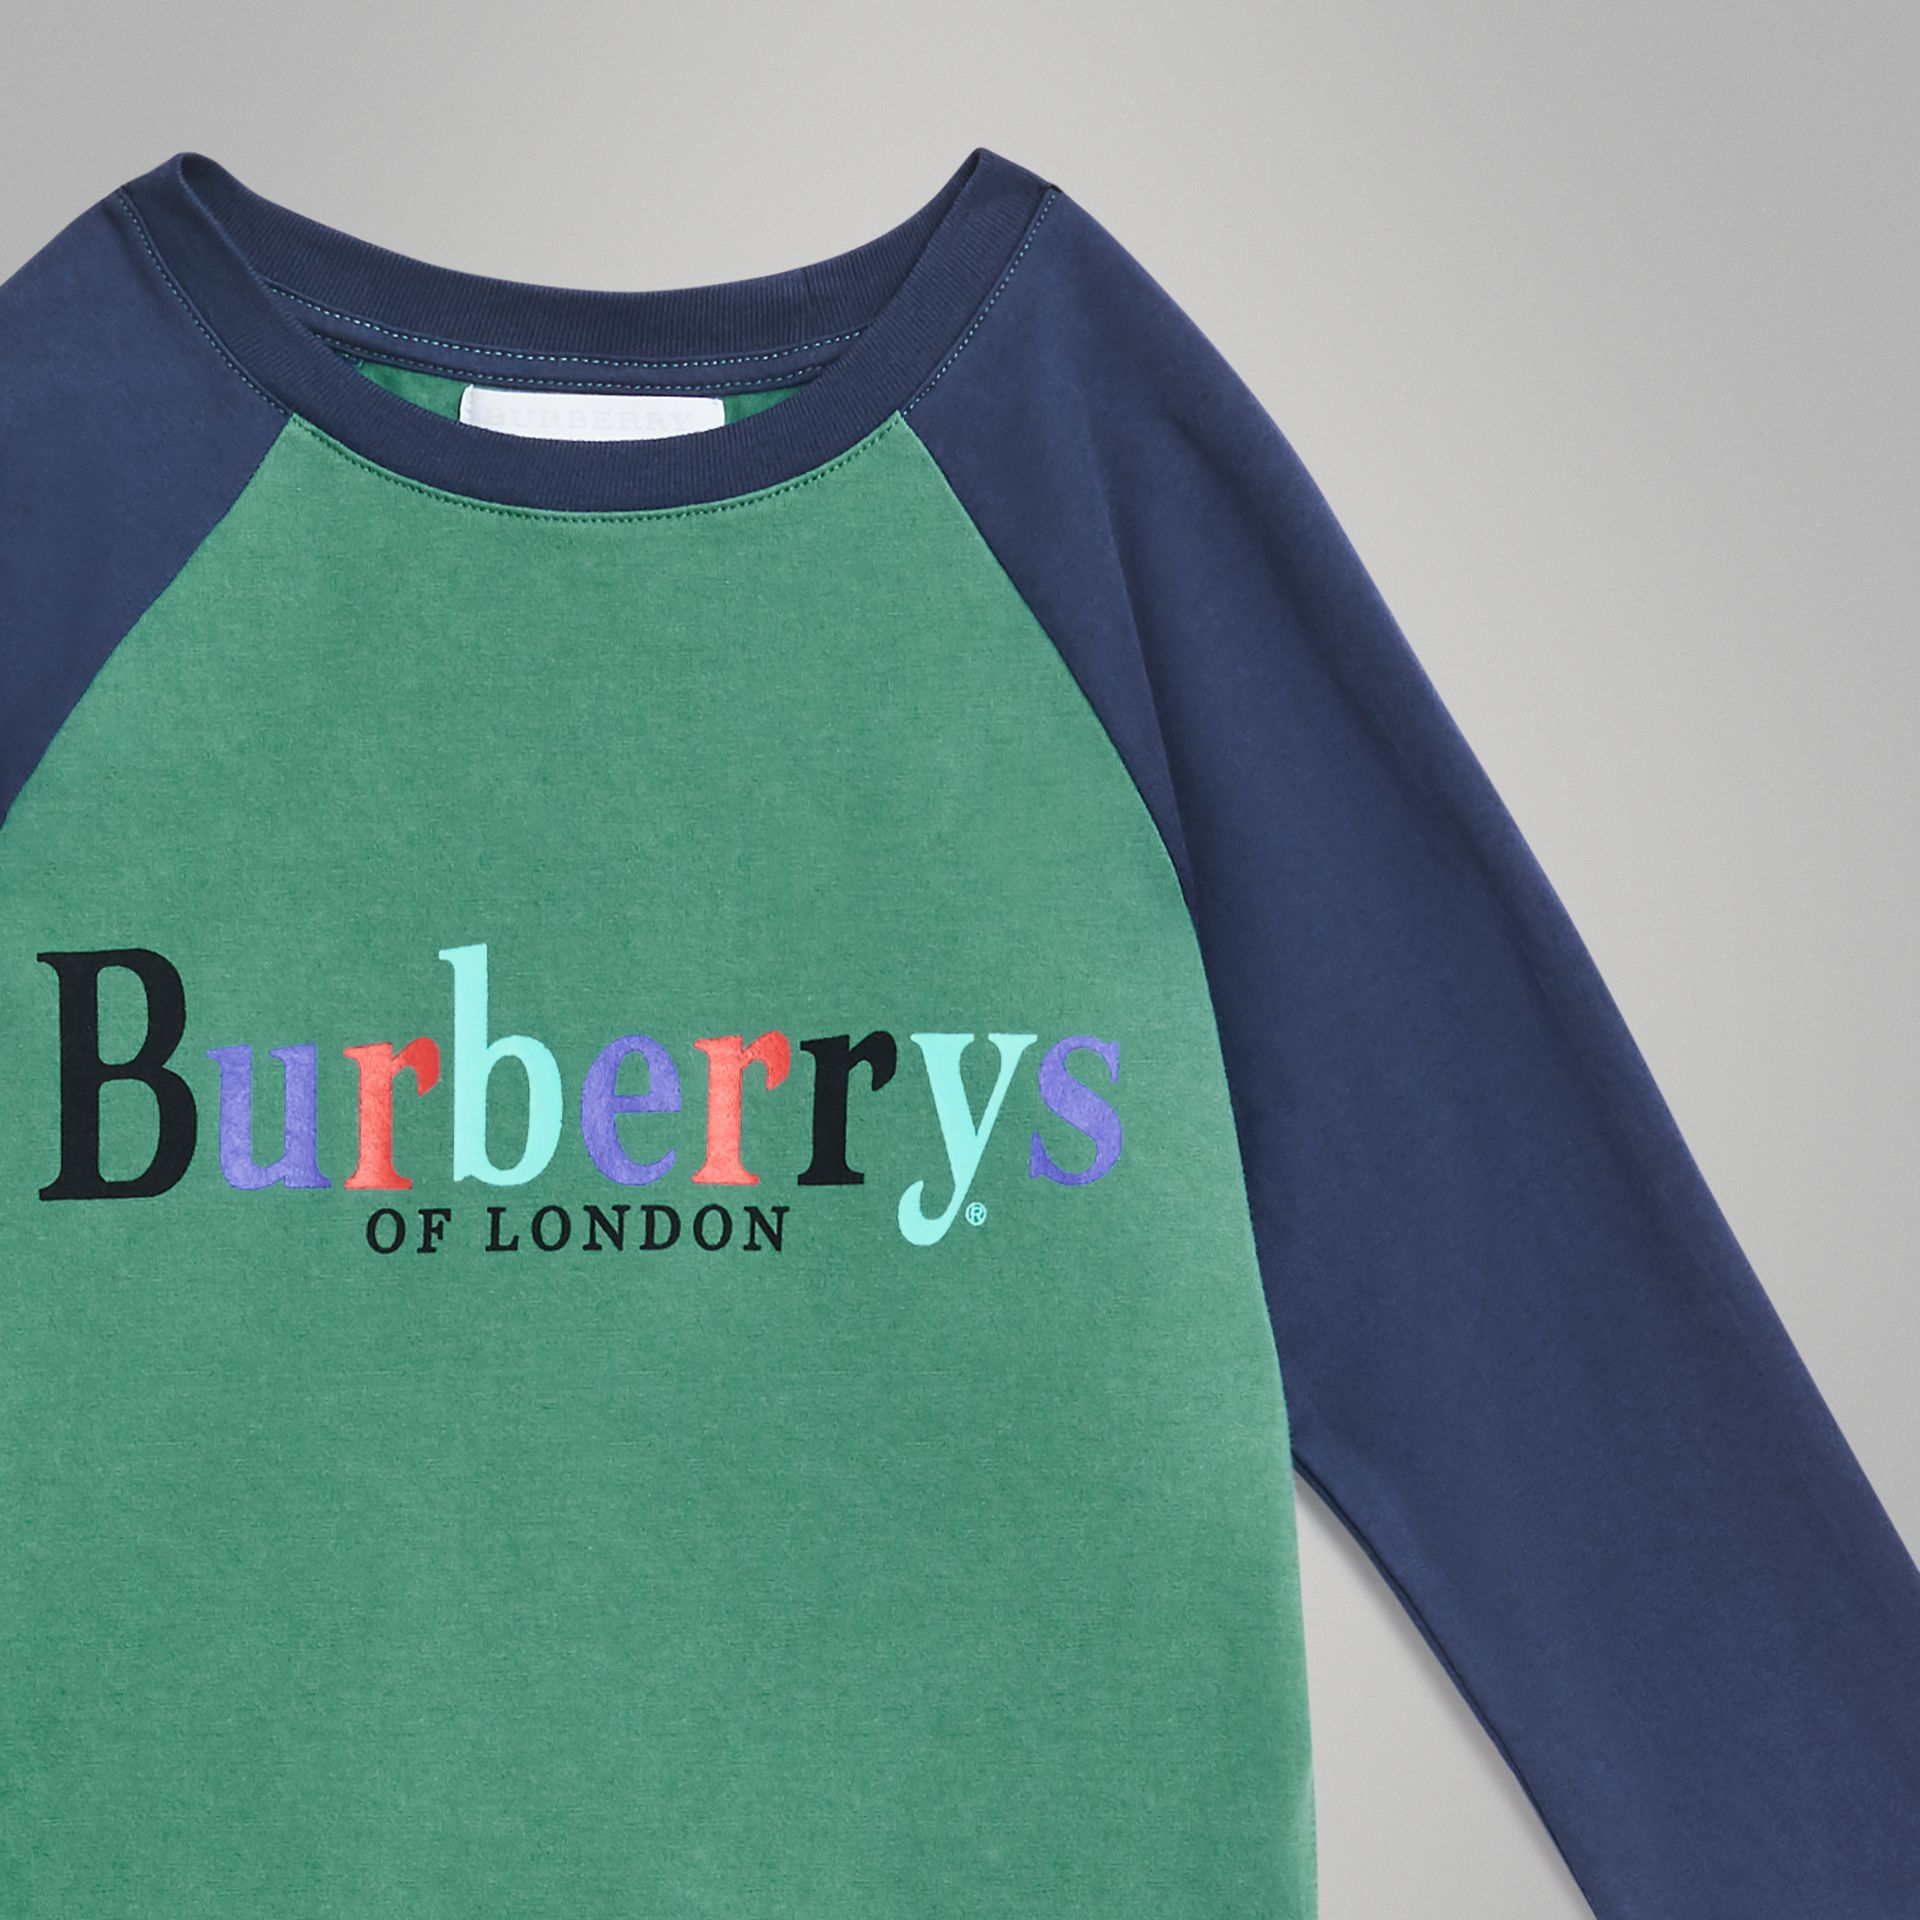 Archive Logo Print Two-tone Cotton Top in Bright Pigment Green | Burberry United States - gallery image 4